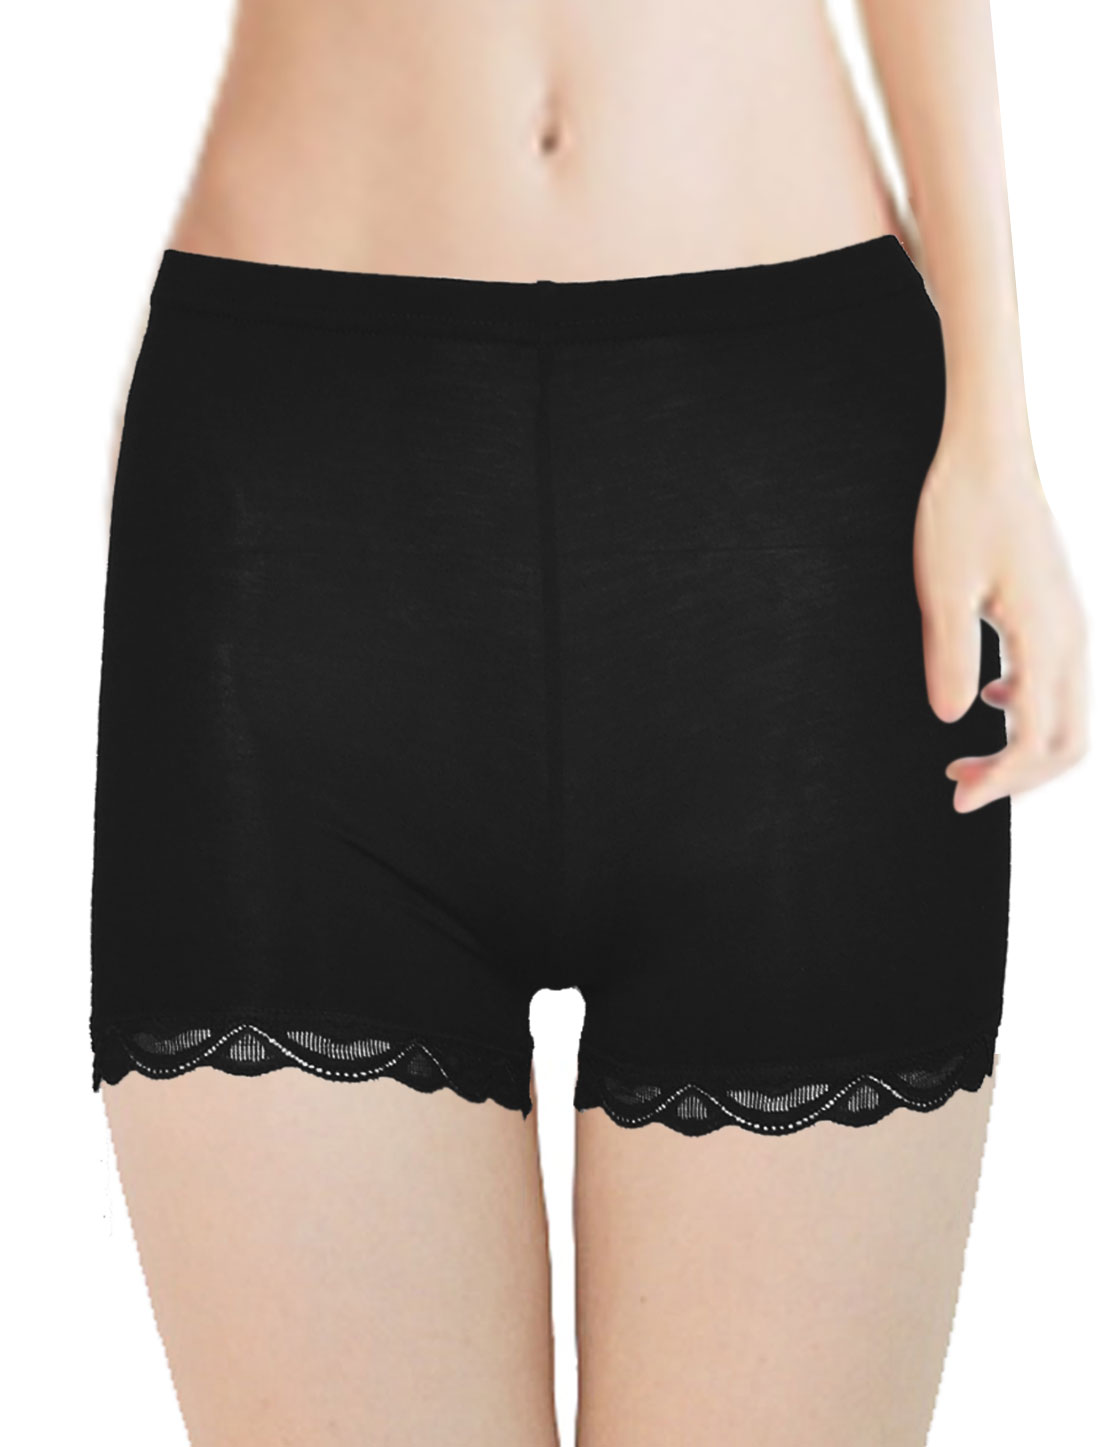 XS Lace Hem Elastic Waist Short Pants Leggings Black for Ladies